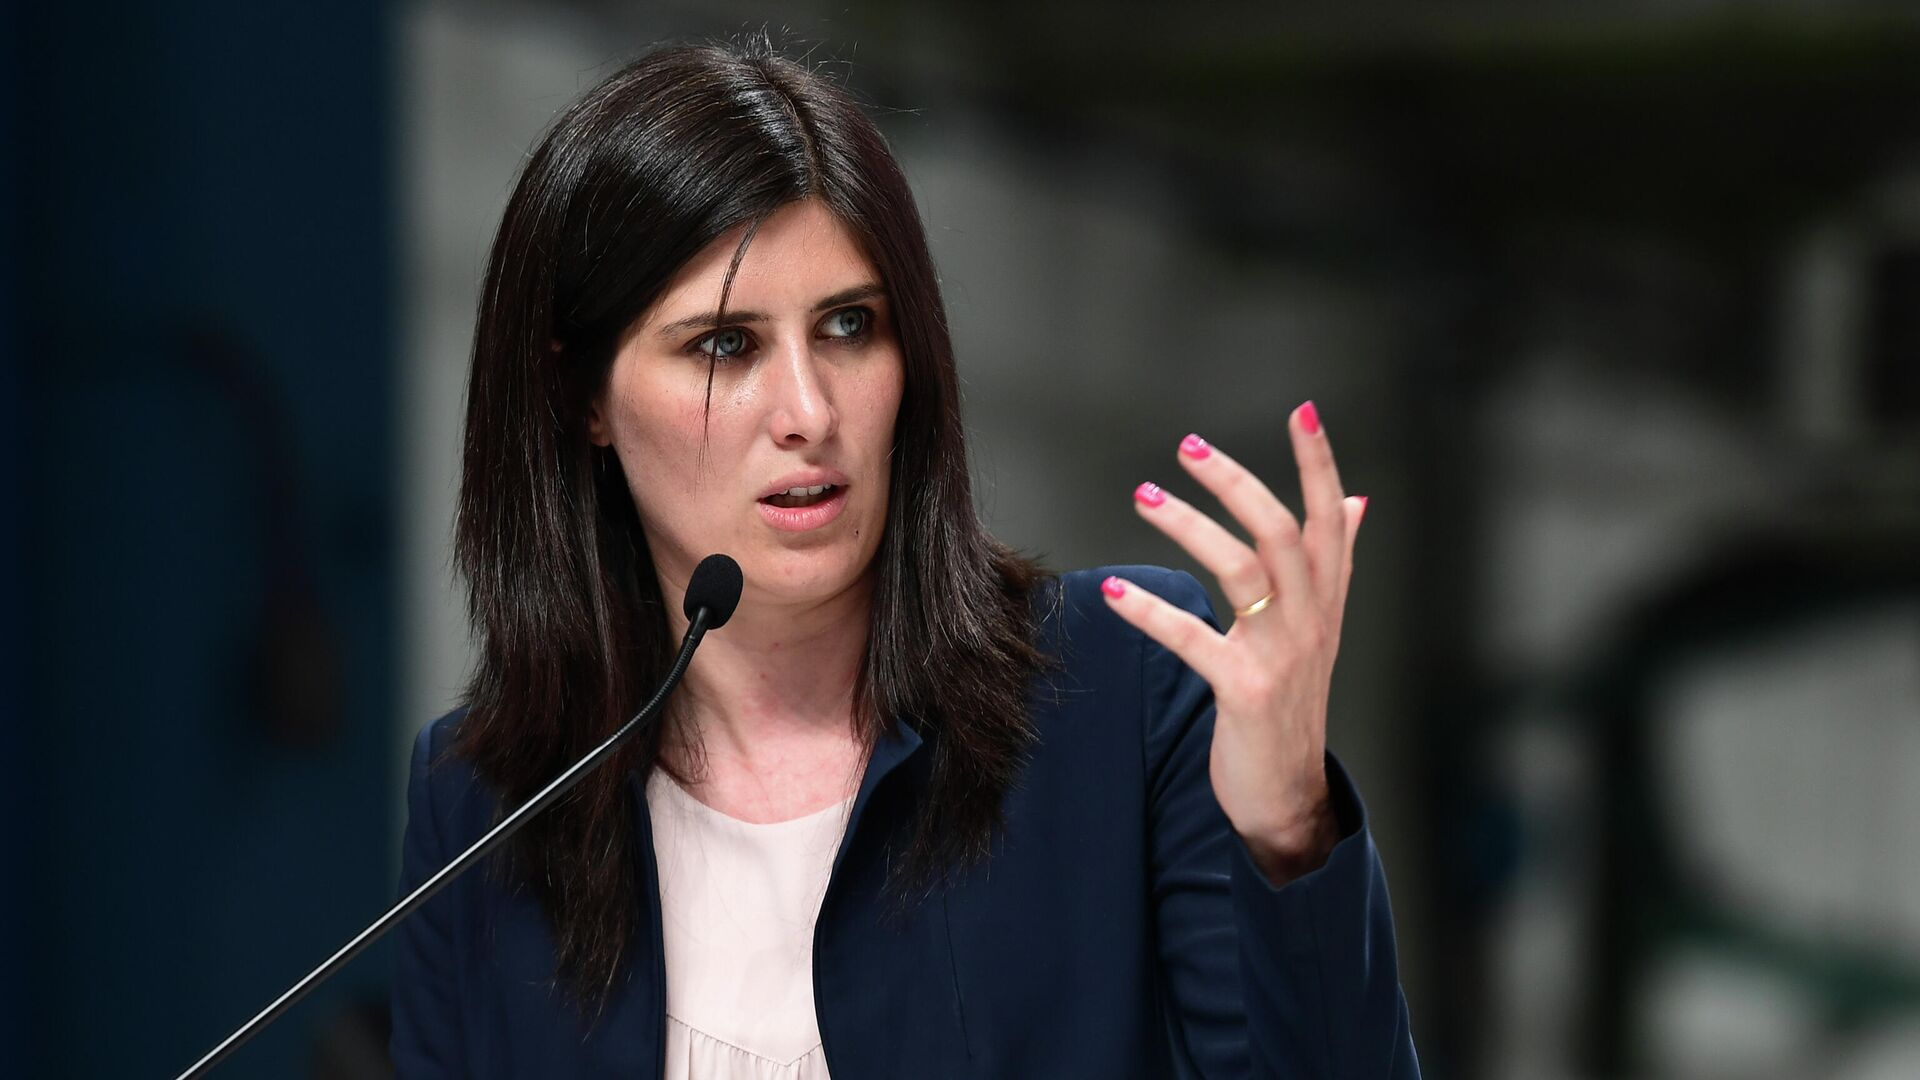 Turin mayor Chiara Appendino delivers a speech during the inauguration of new robots manufactured by Comau  on the assembly line of the Fiat 500 BEV Battery Electric Vehicle, the first of its kind in Europe, at the Mirafiori plant in Turin on July 11, 2019. (Photo by Miguel MEDINA / AFP) - РИА Новости, 1920, 27.01.2021